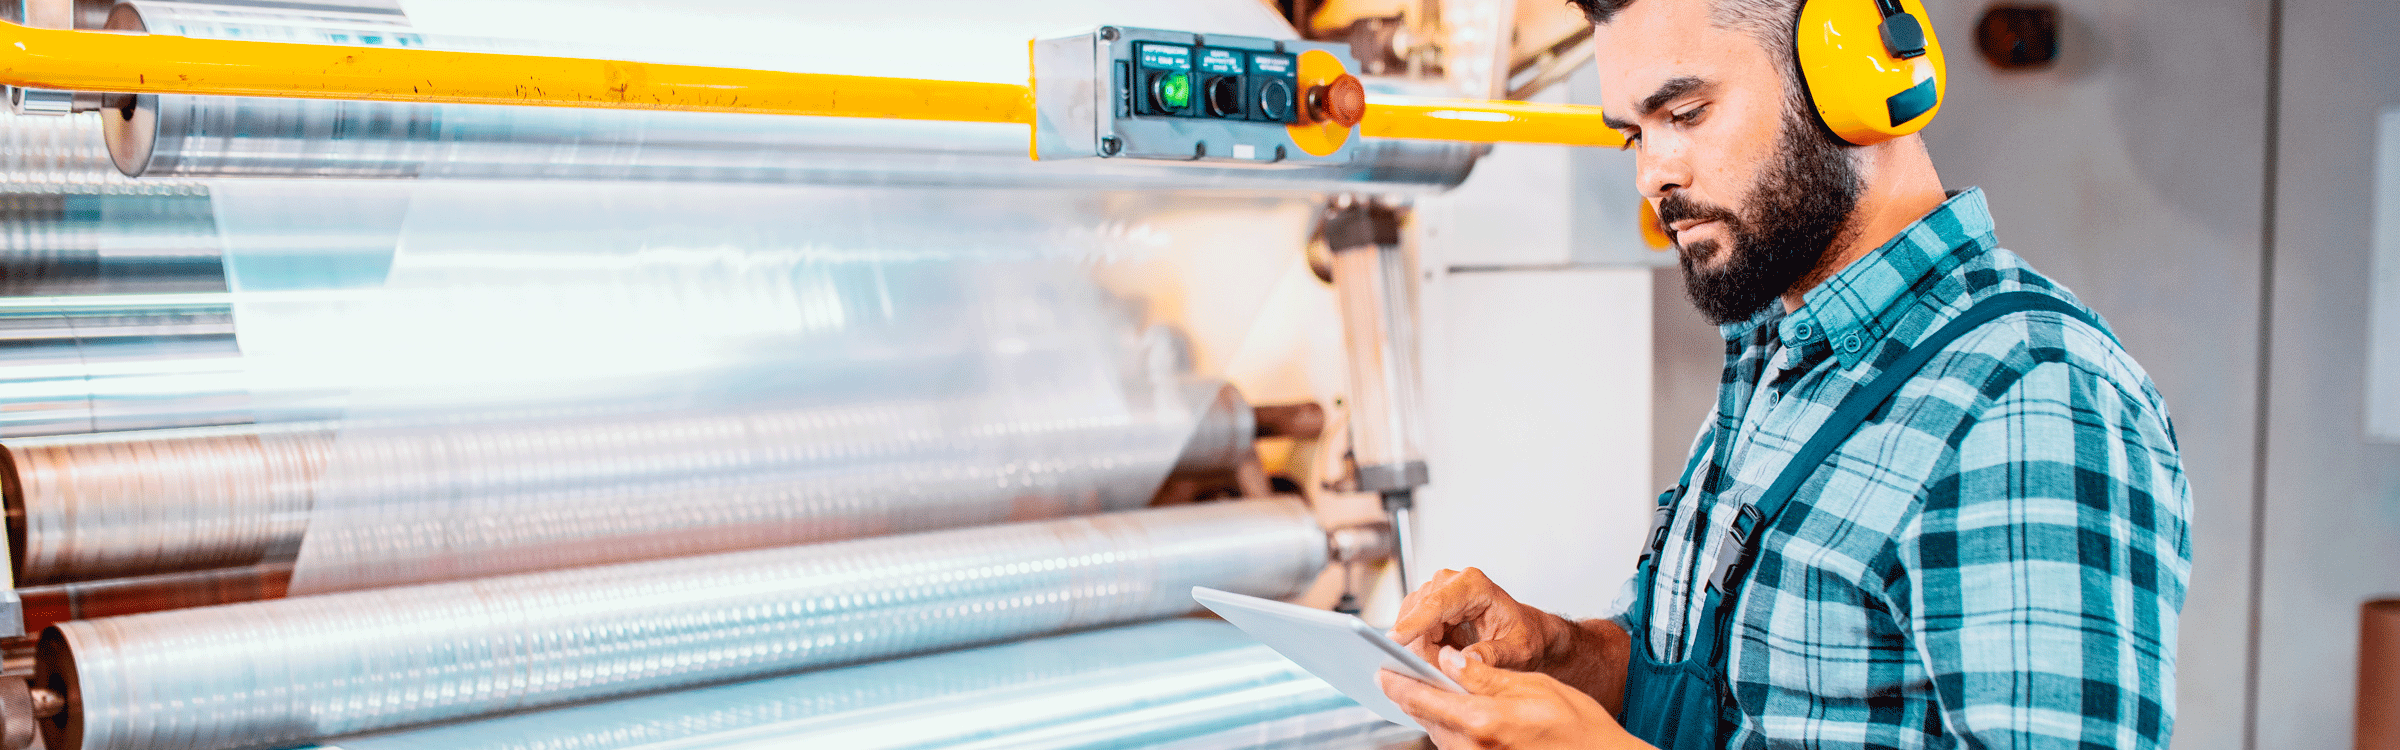 Managing production quality and efficiency